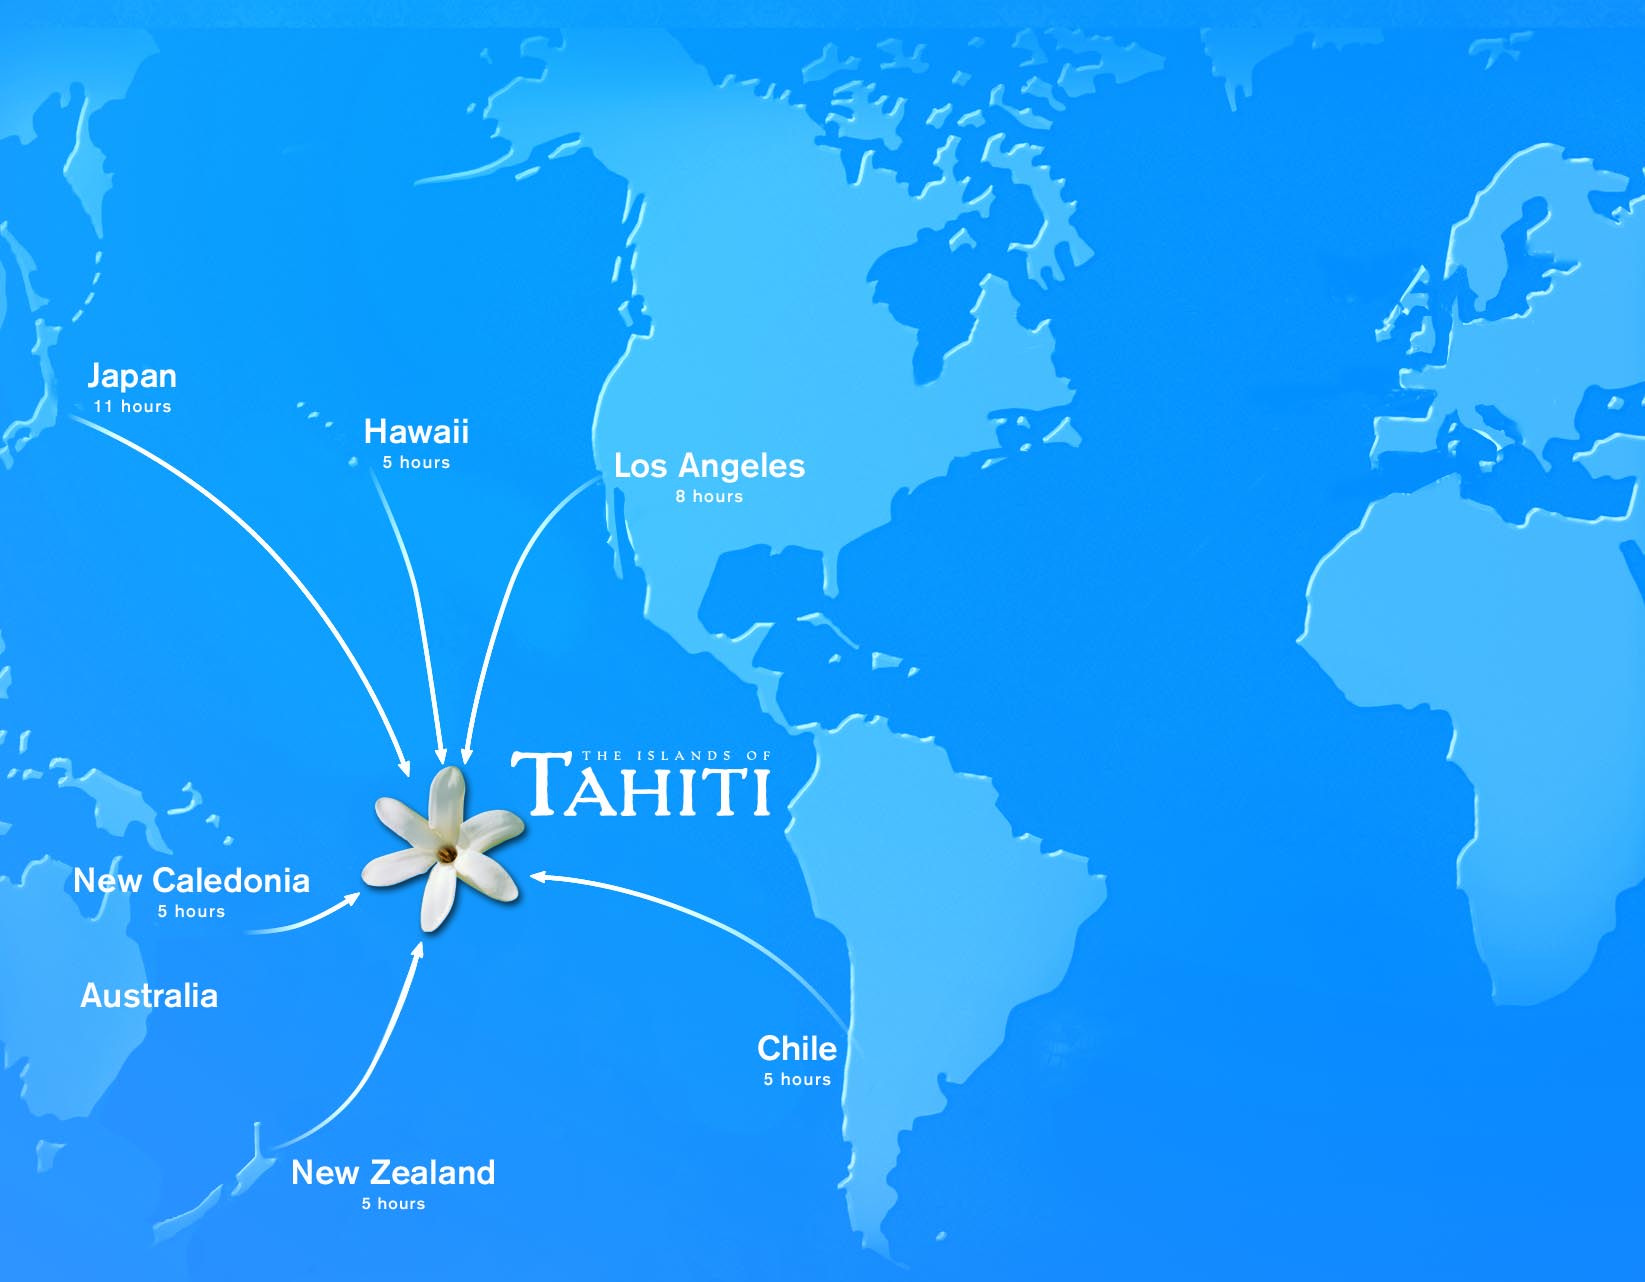 The Islands of Tahiti - only 8 hours from L.A.   Tahiti ... on map of bora bora, map of austrailia, map of hawaii, map of seychelles, map of bahamas, map of bali, map of thailand, map of carribean, map of new zealand, map of brazil, map of kwajalein, map of pacific ocean, map of french polynesia, map of spain, map of costa rica, map of switzerland, map of south pacific, map of malaysia, map of moorea, map of fiji,